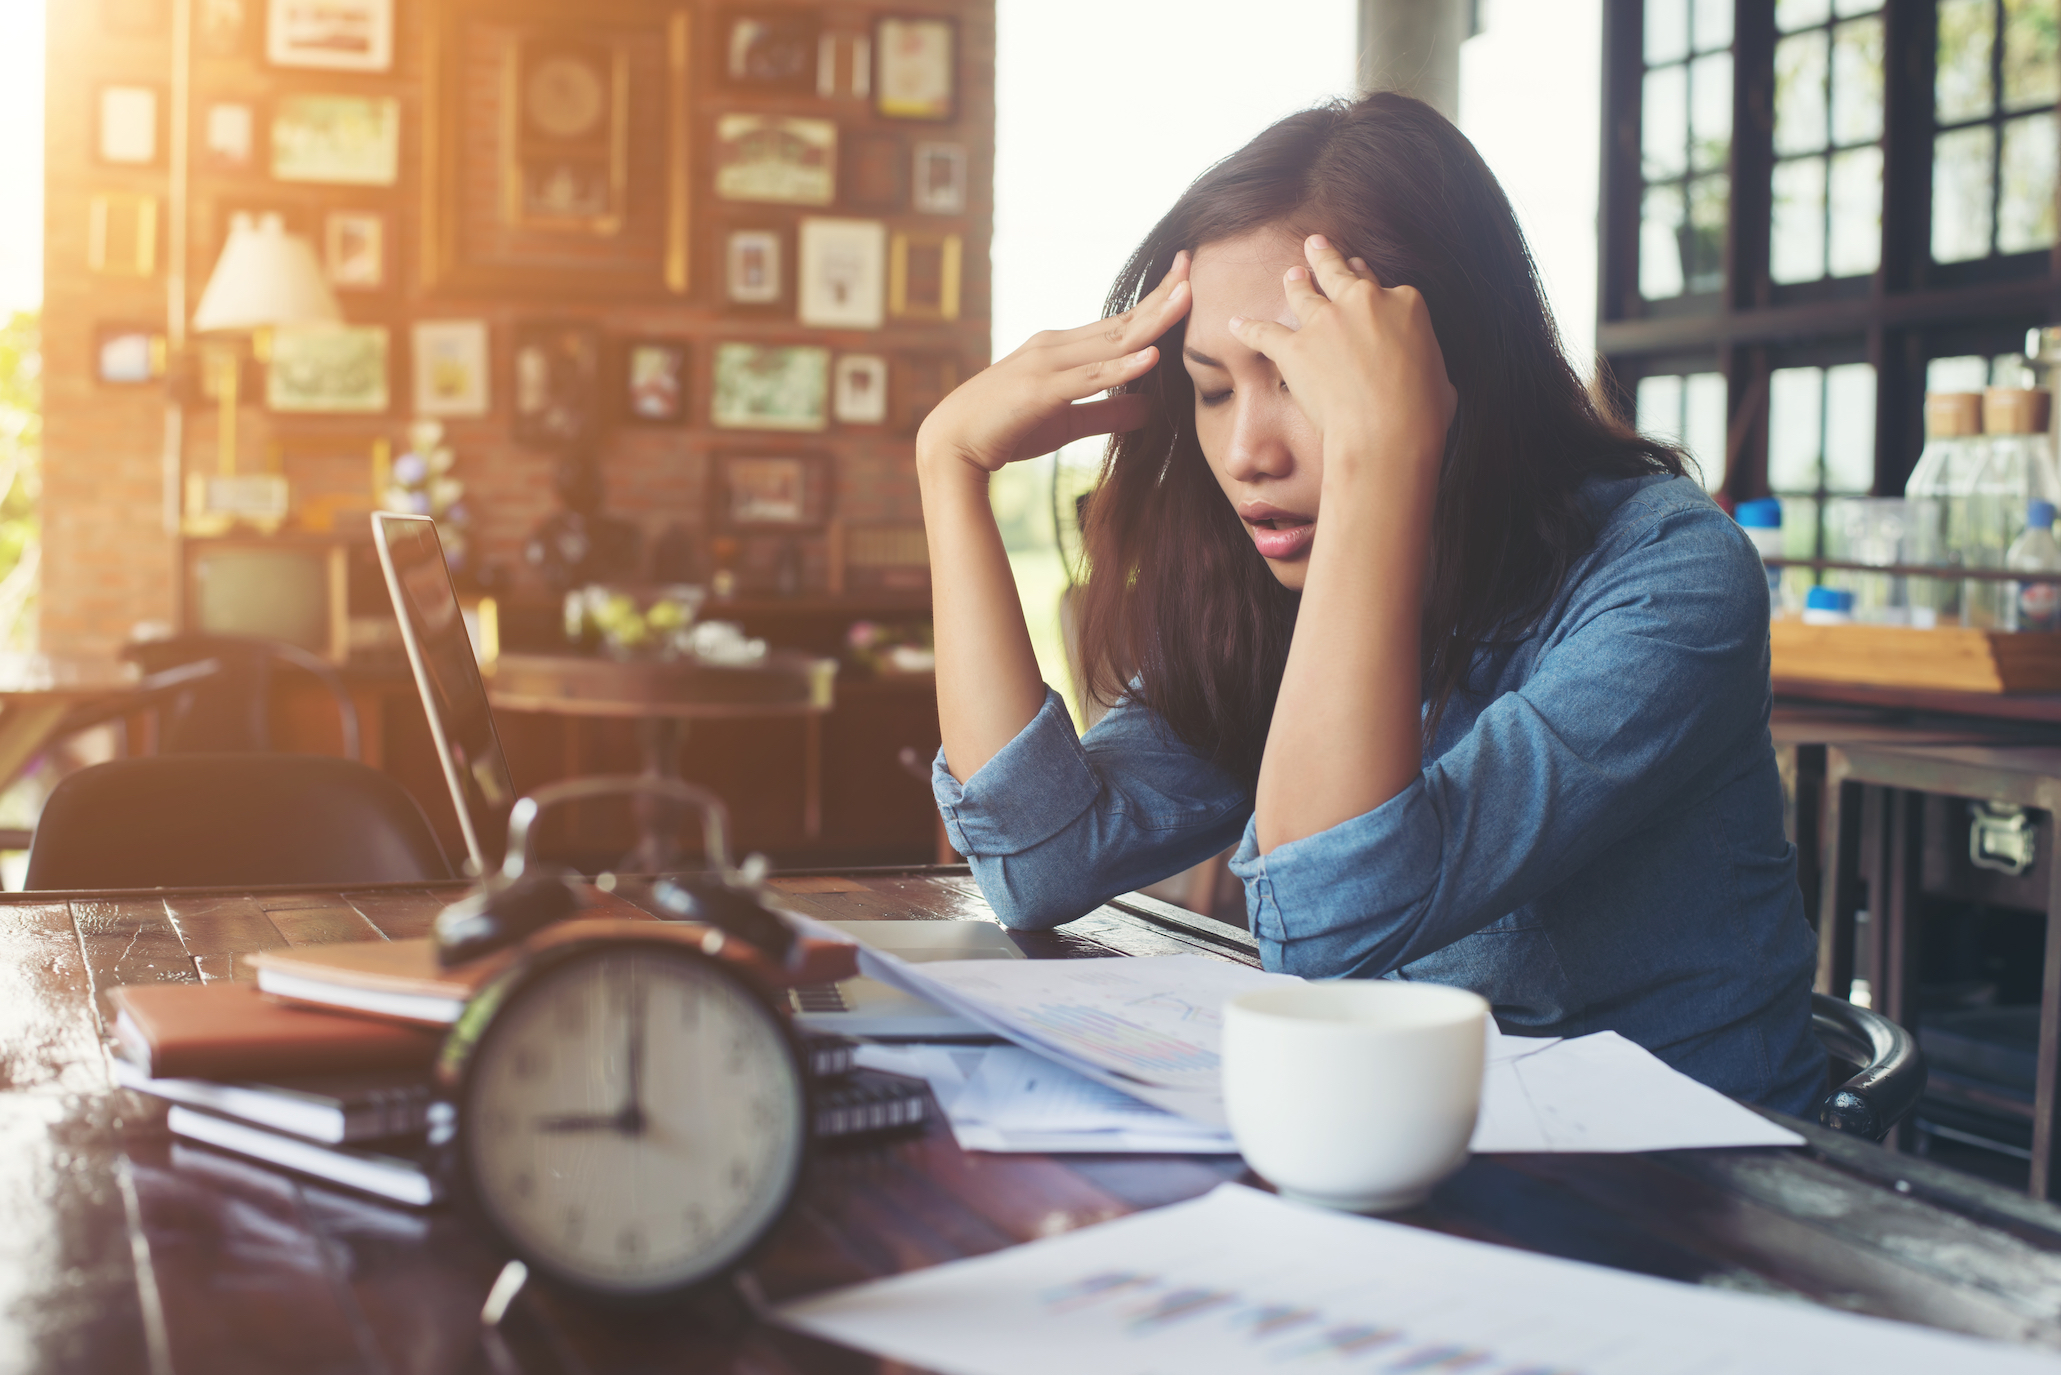 A new study from the Society for Neuroscience has found that stress makes it easier for us to process bad news.